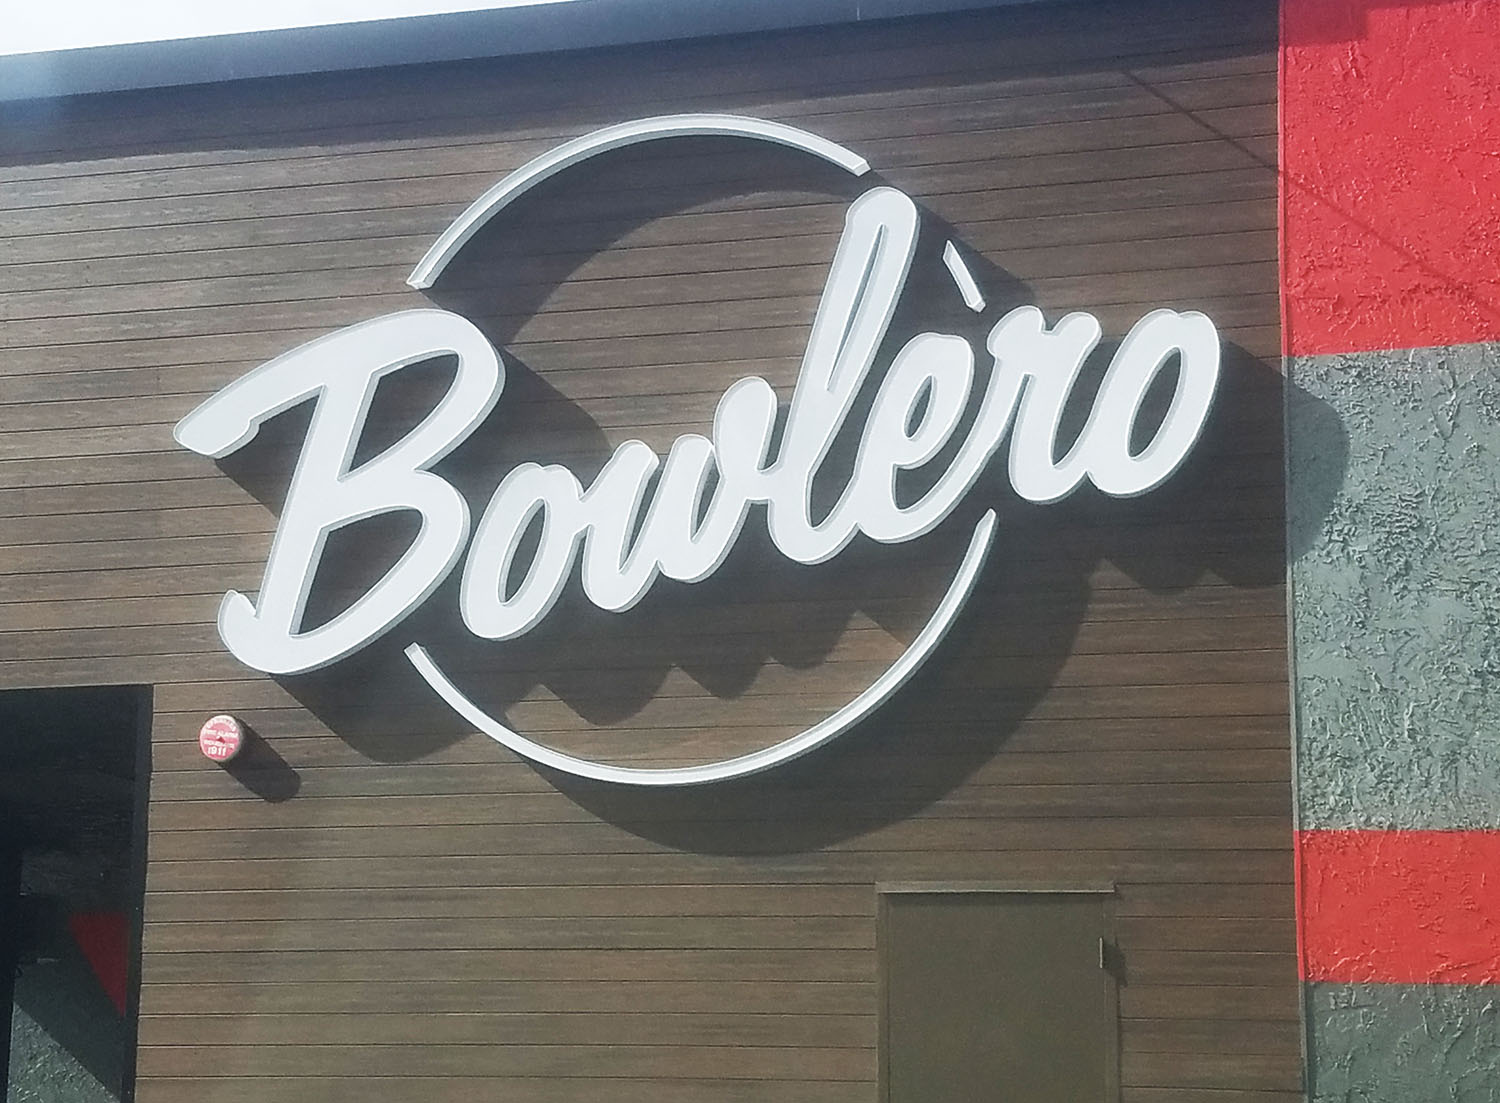 Channel letter sign for Bowlero, Milpitas CA